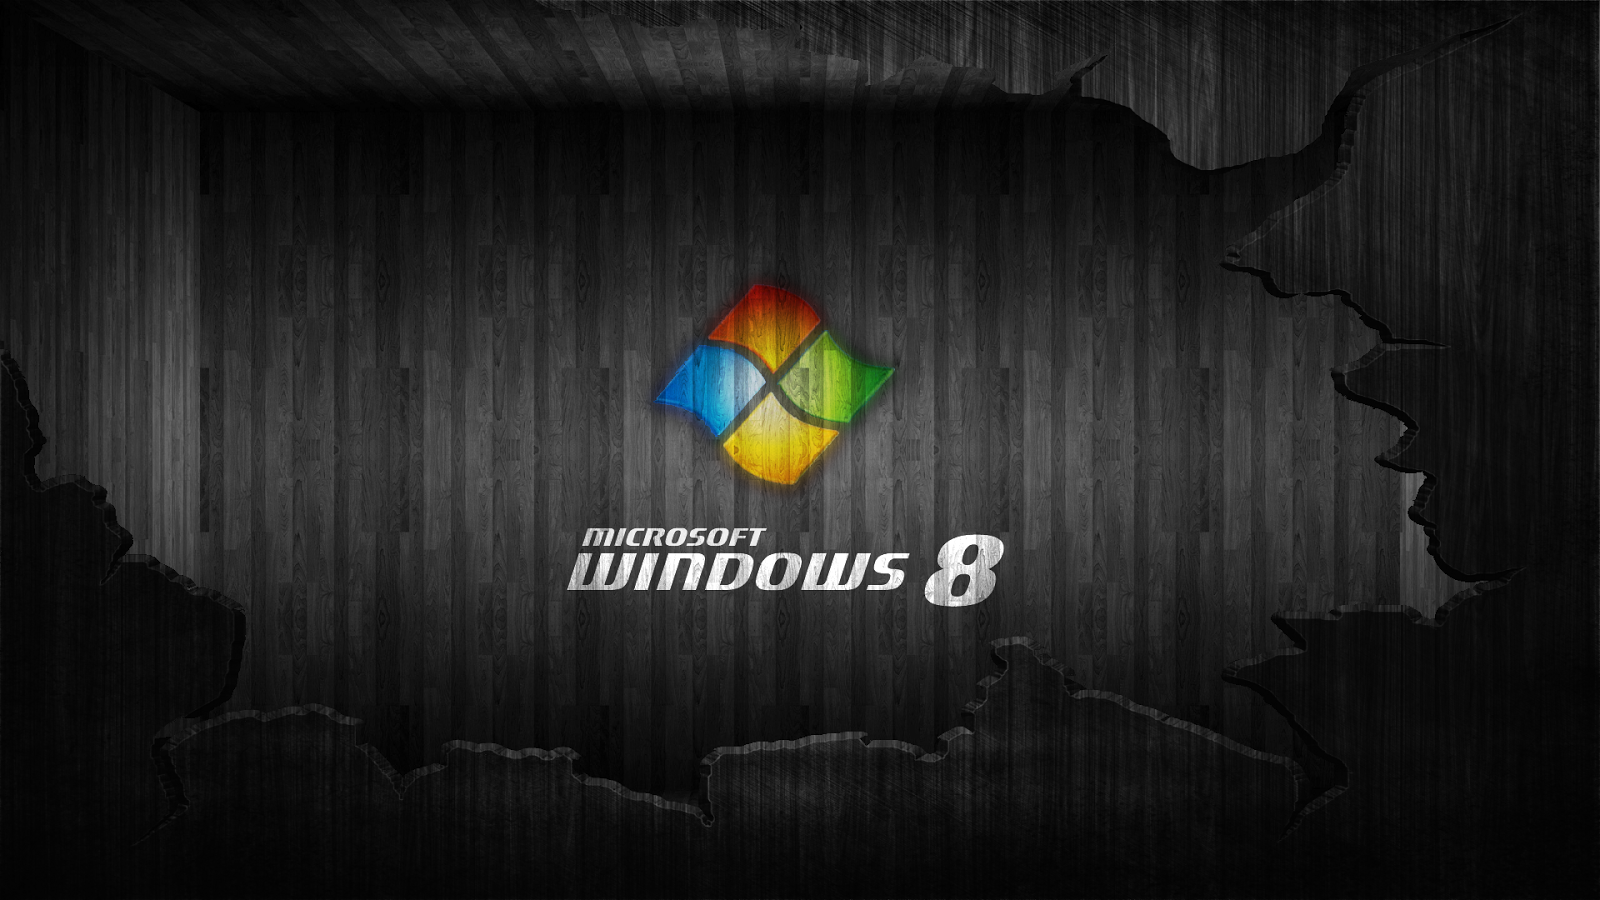 3d wallpapers window 8 wallpapers